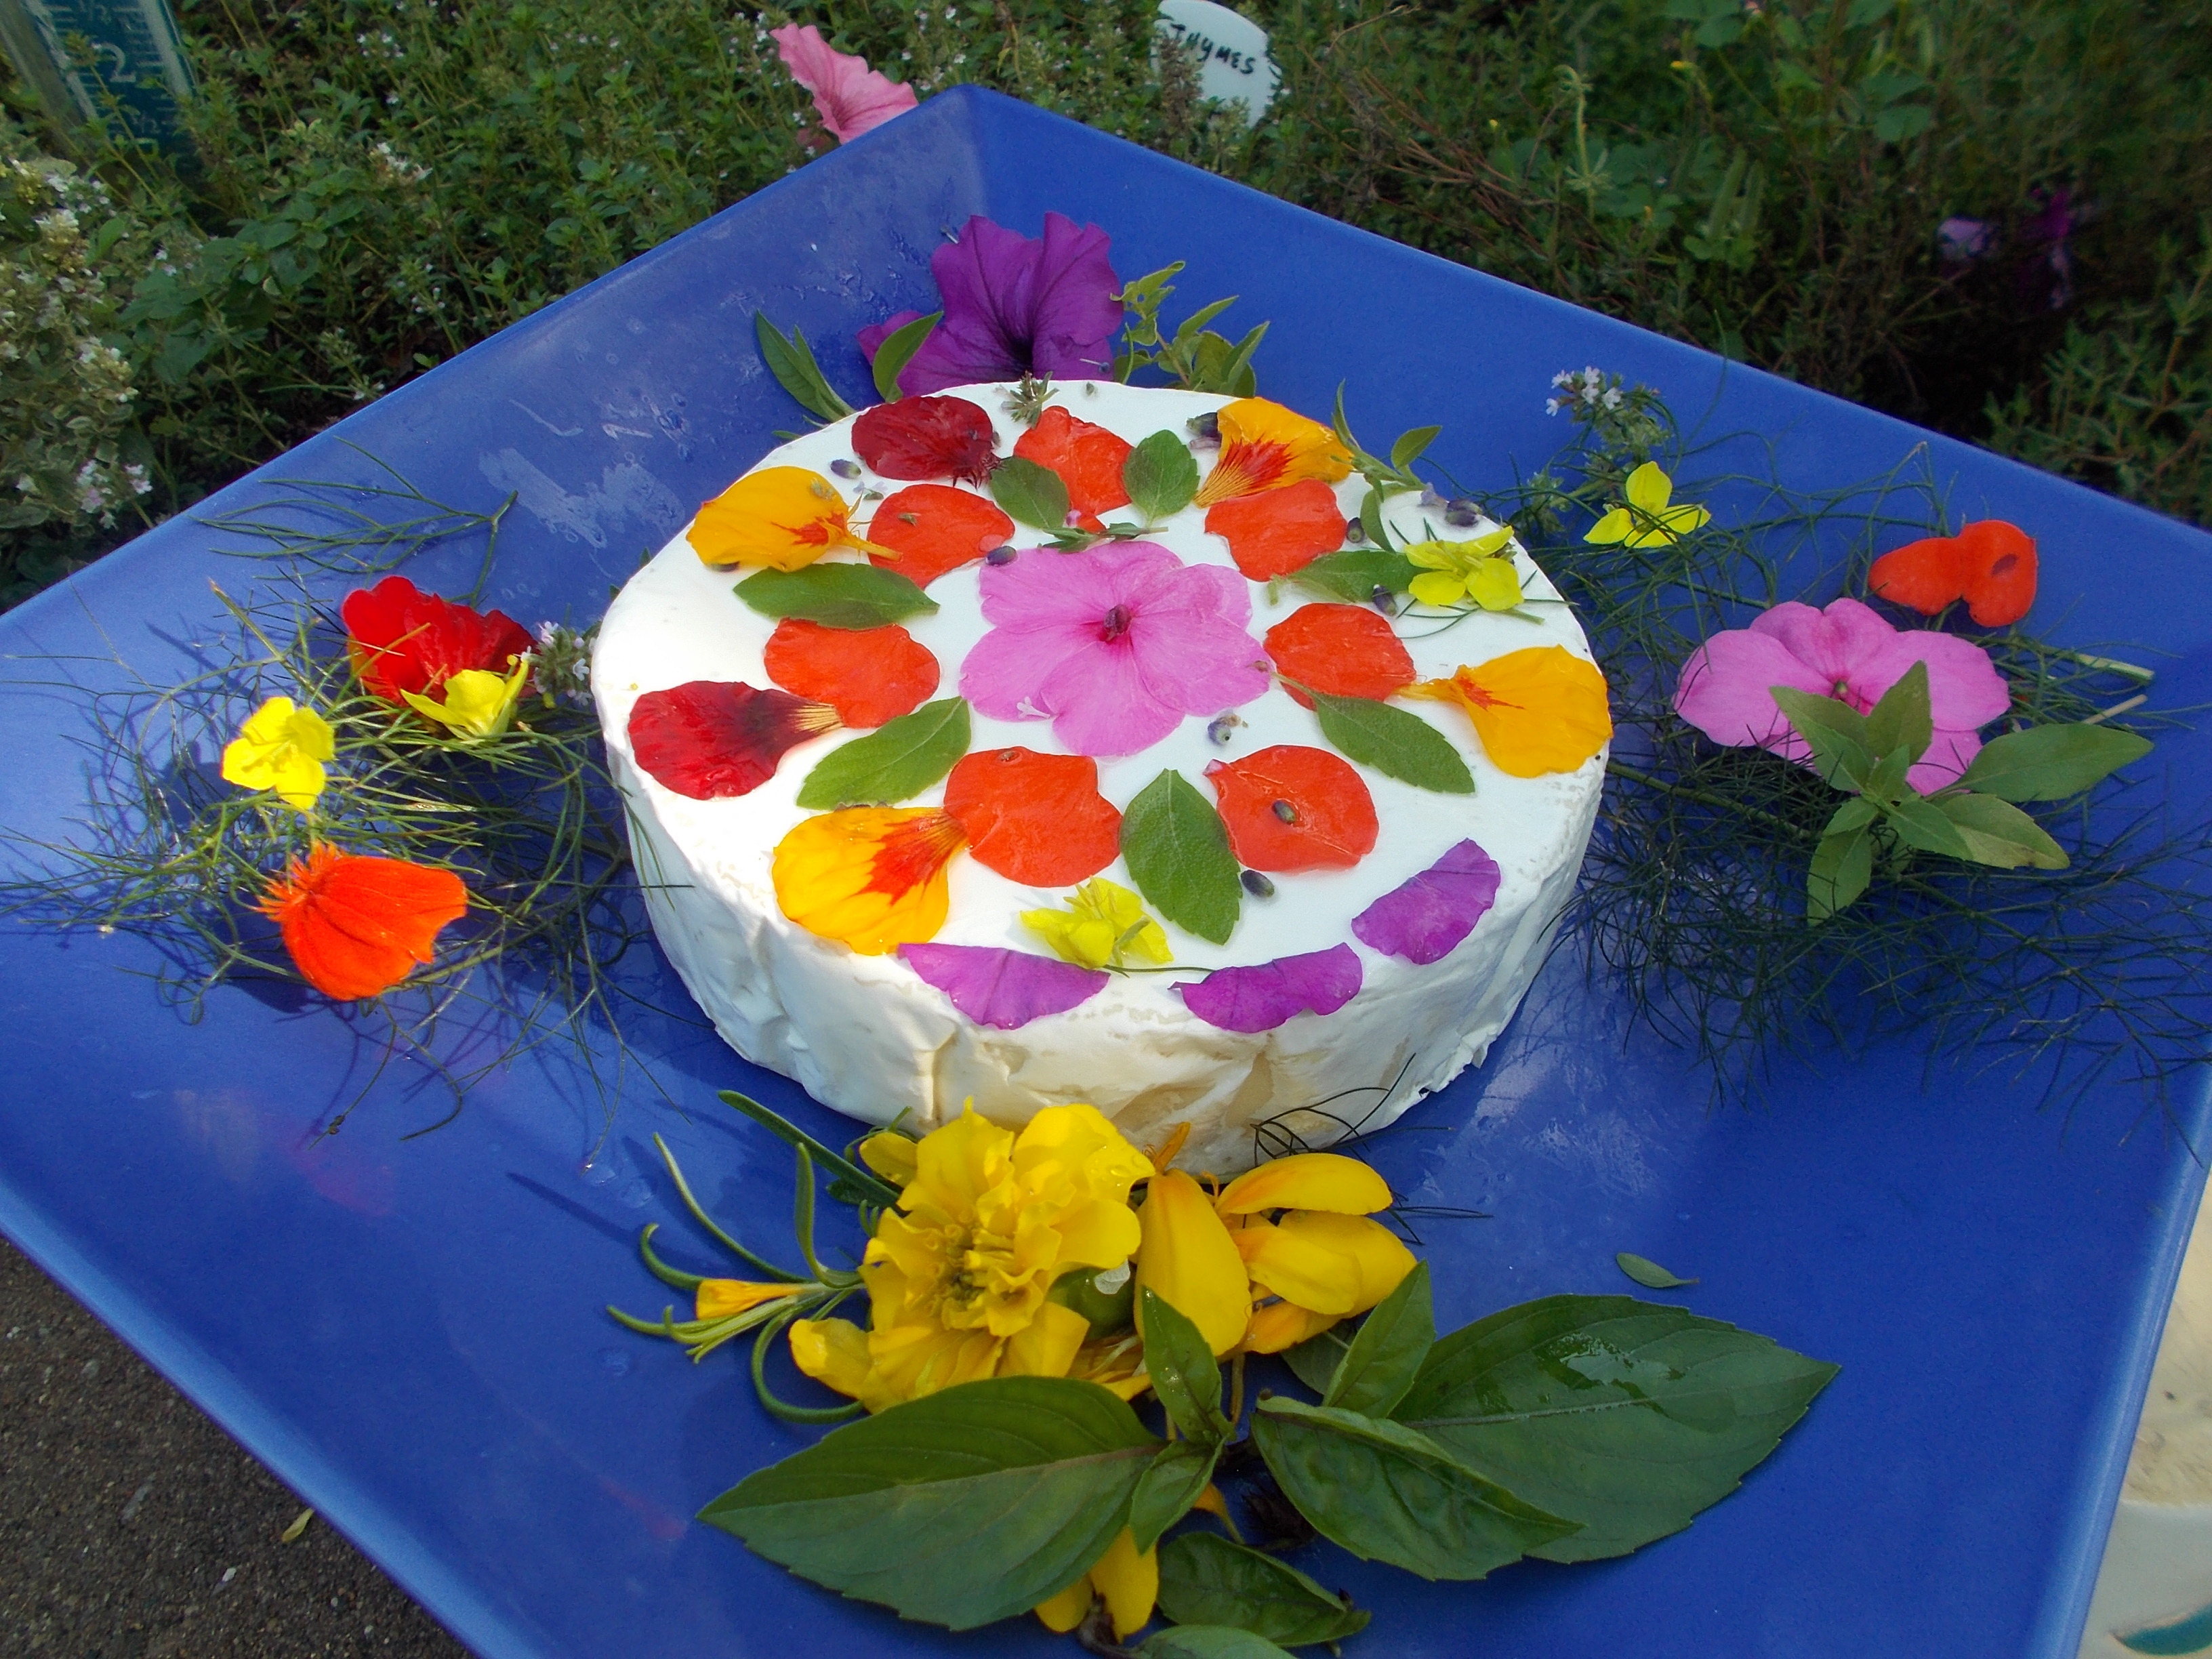 Edible Flowers List: 5 Plants for Culinary Creations